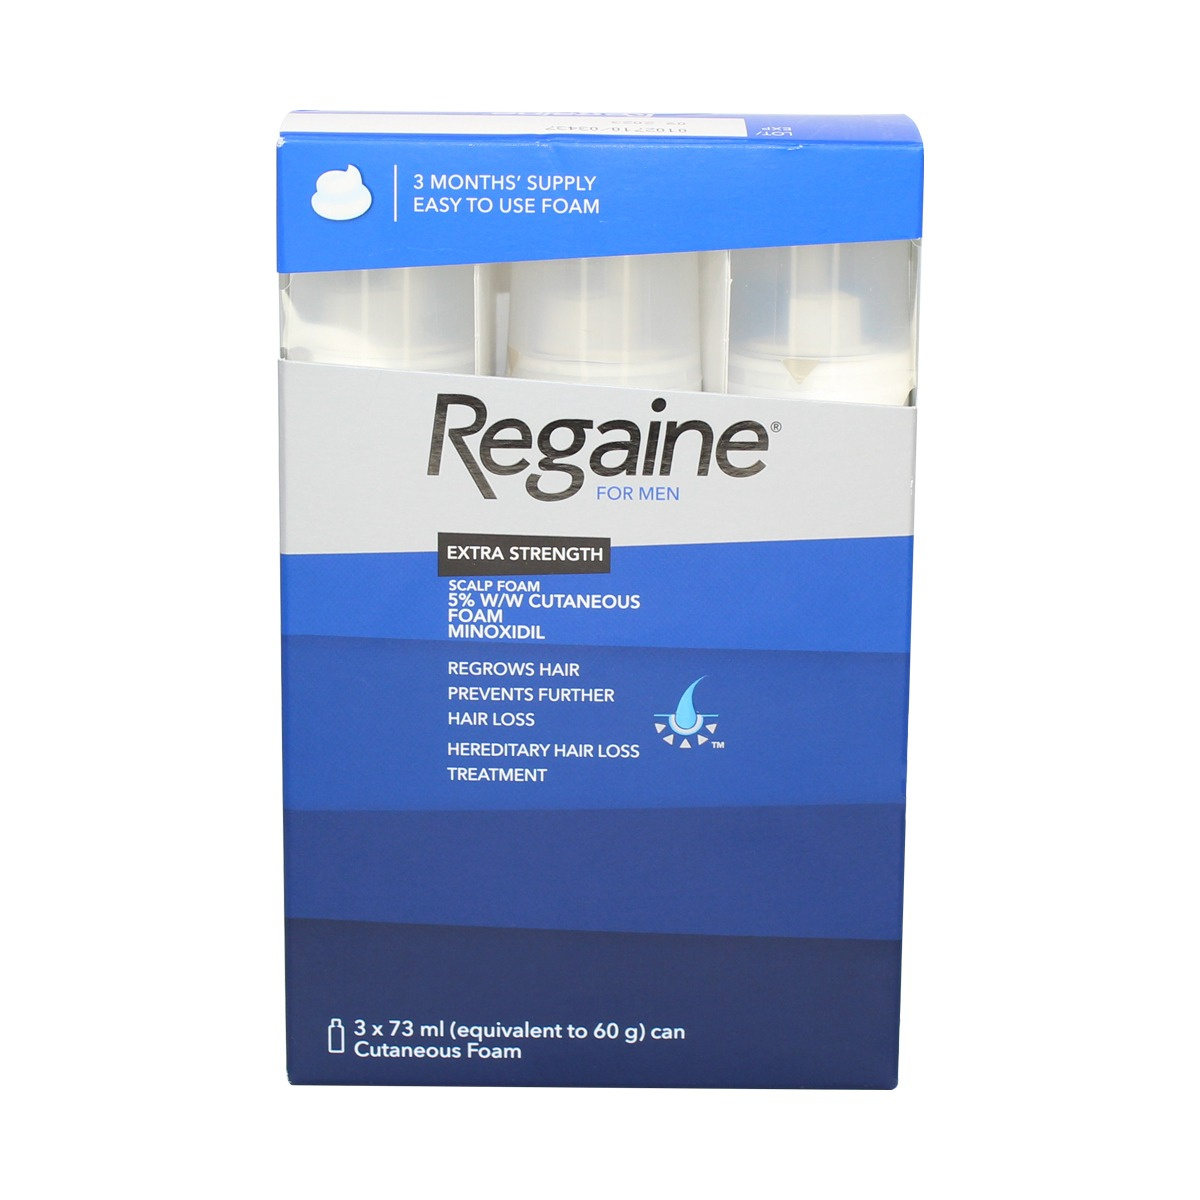 Regaine for Men Extra Strength Scalp Foam - 3 Months' Supply